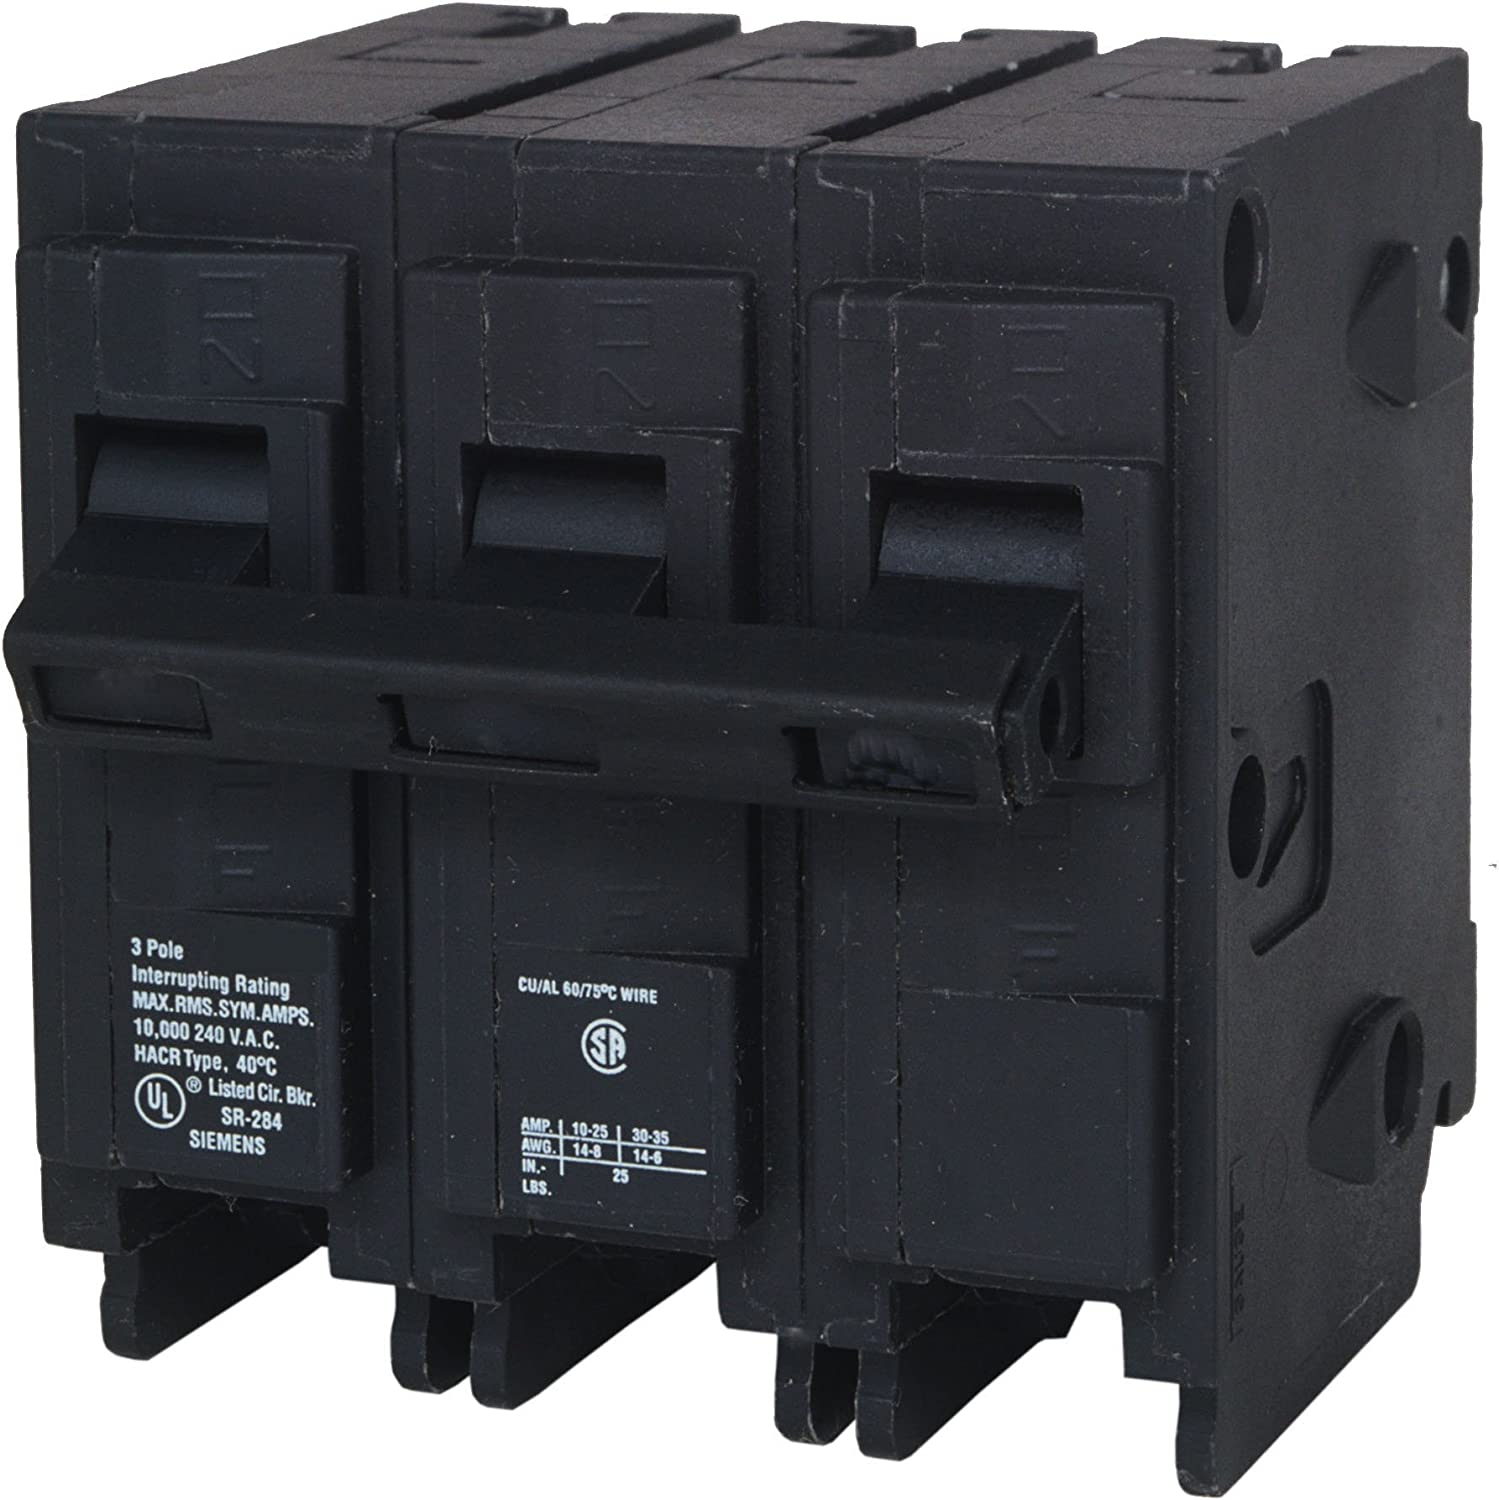 Q360H 60-Amp Three Pole 22kA Type QPH Circuit Breaker